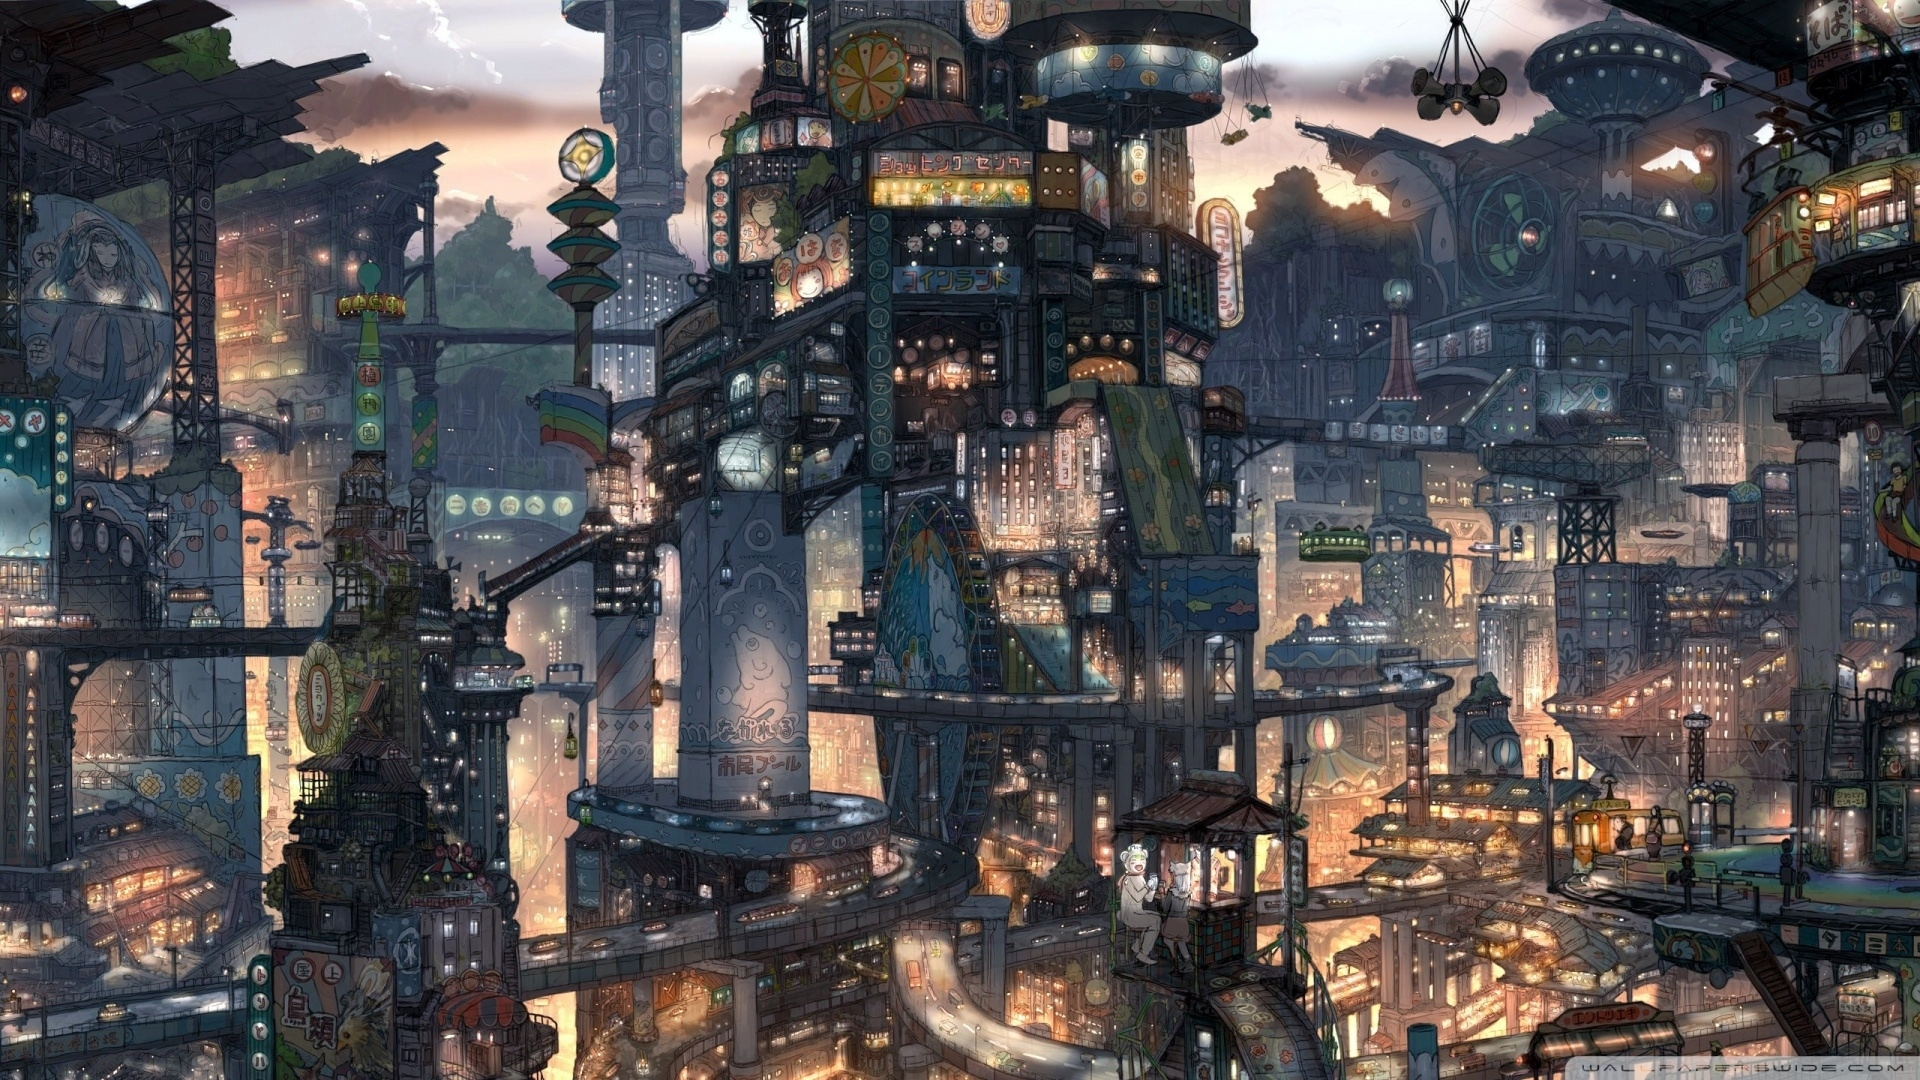 10 Latest Fantasy City Wallpaper 1920x1080 Full Hd 1080p For